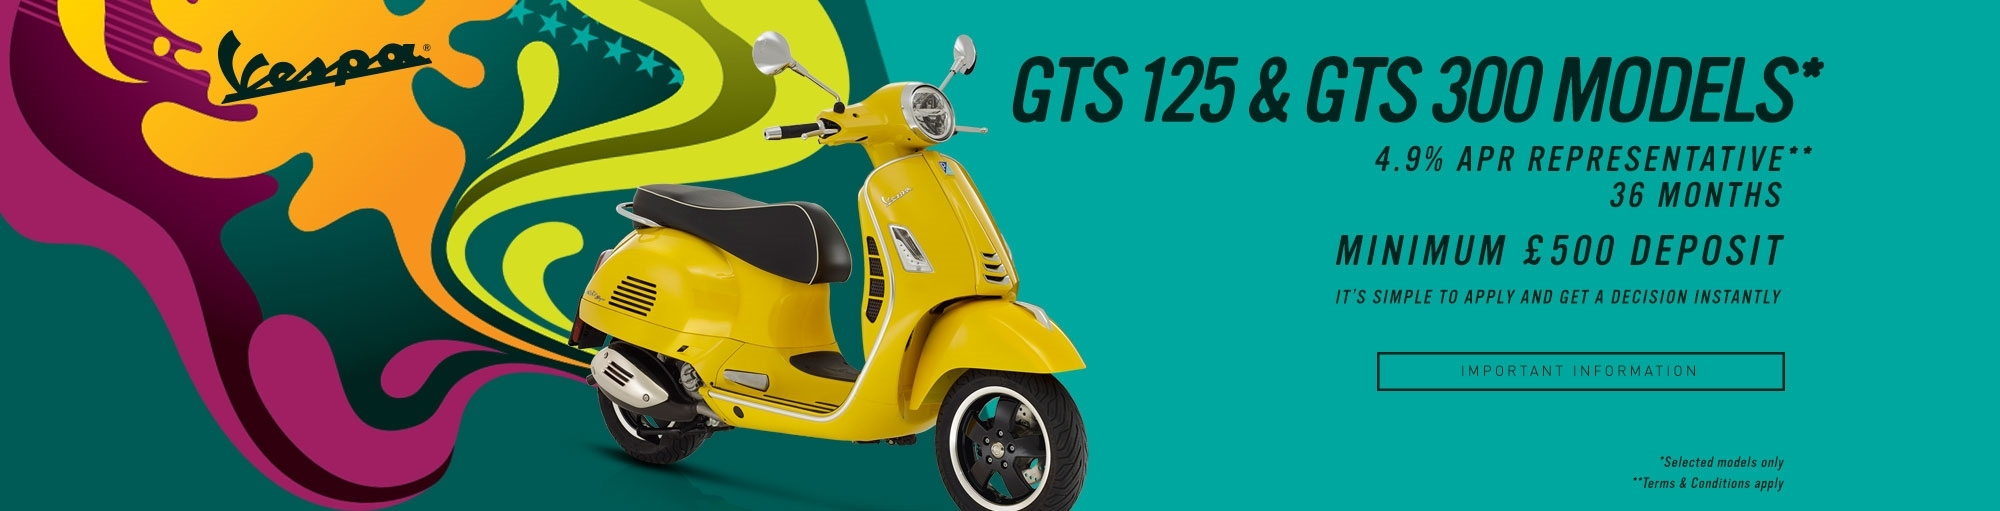 Vespa Finance Offer